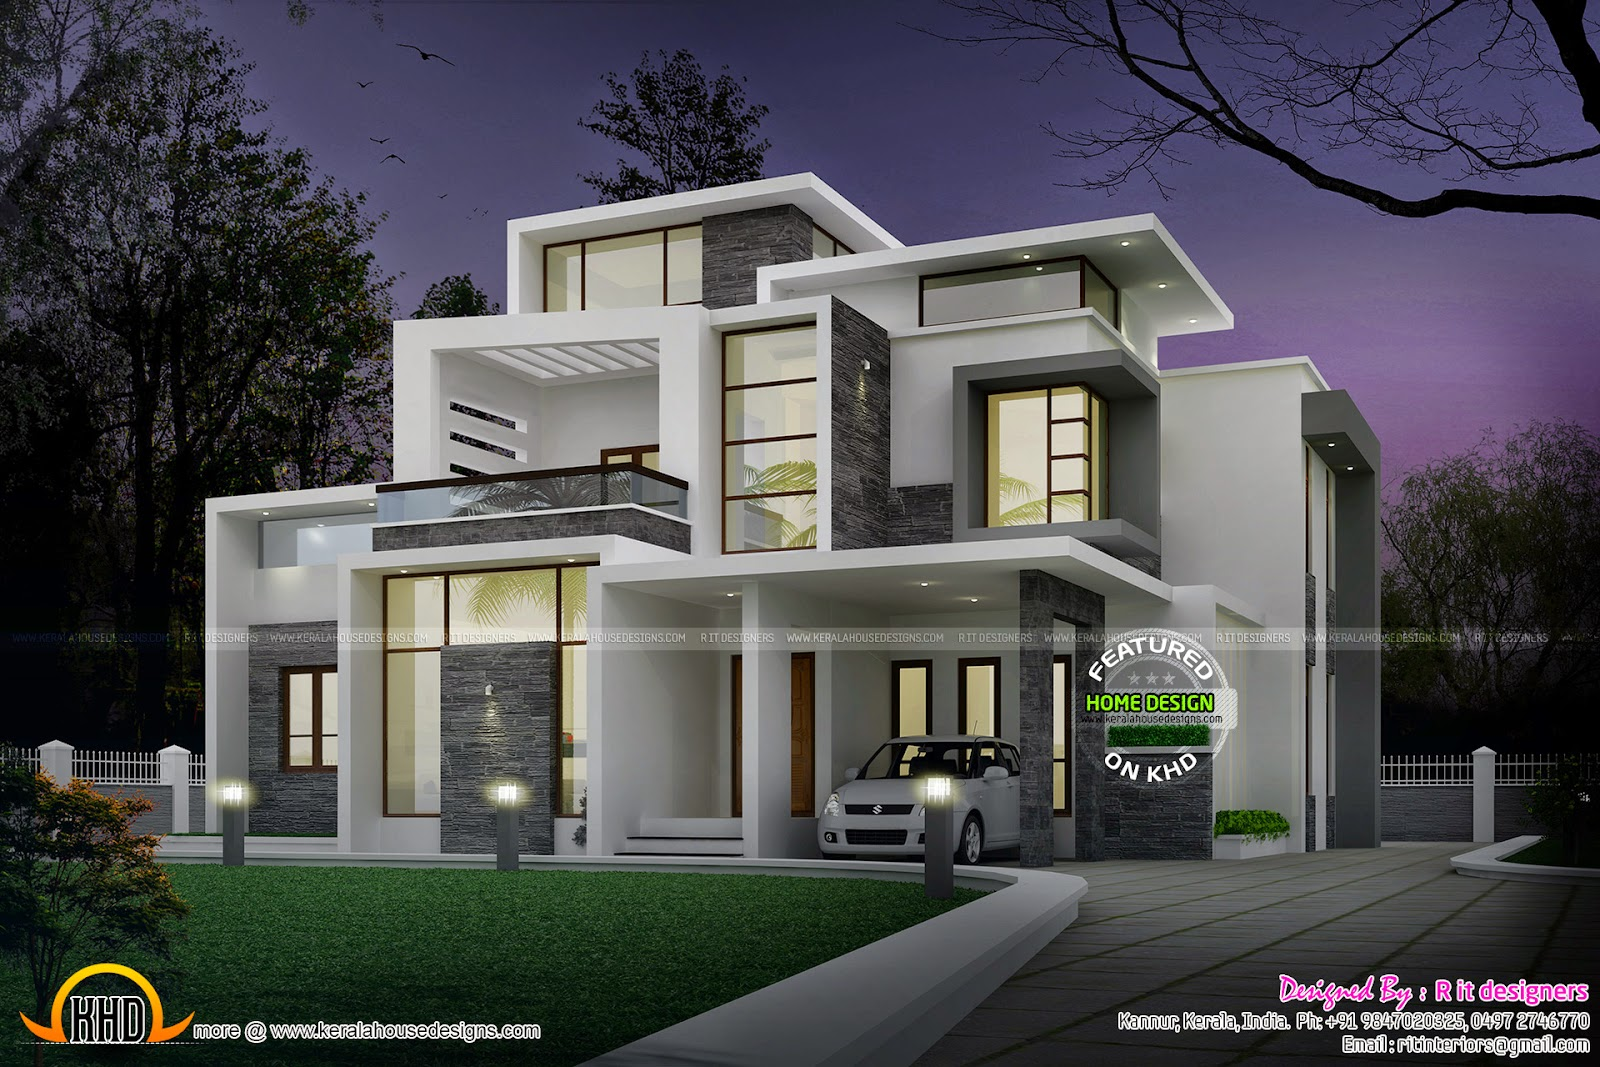 Grand contemporary home design kerala home design and for Best home designs 2015